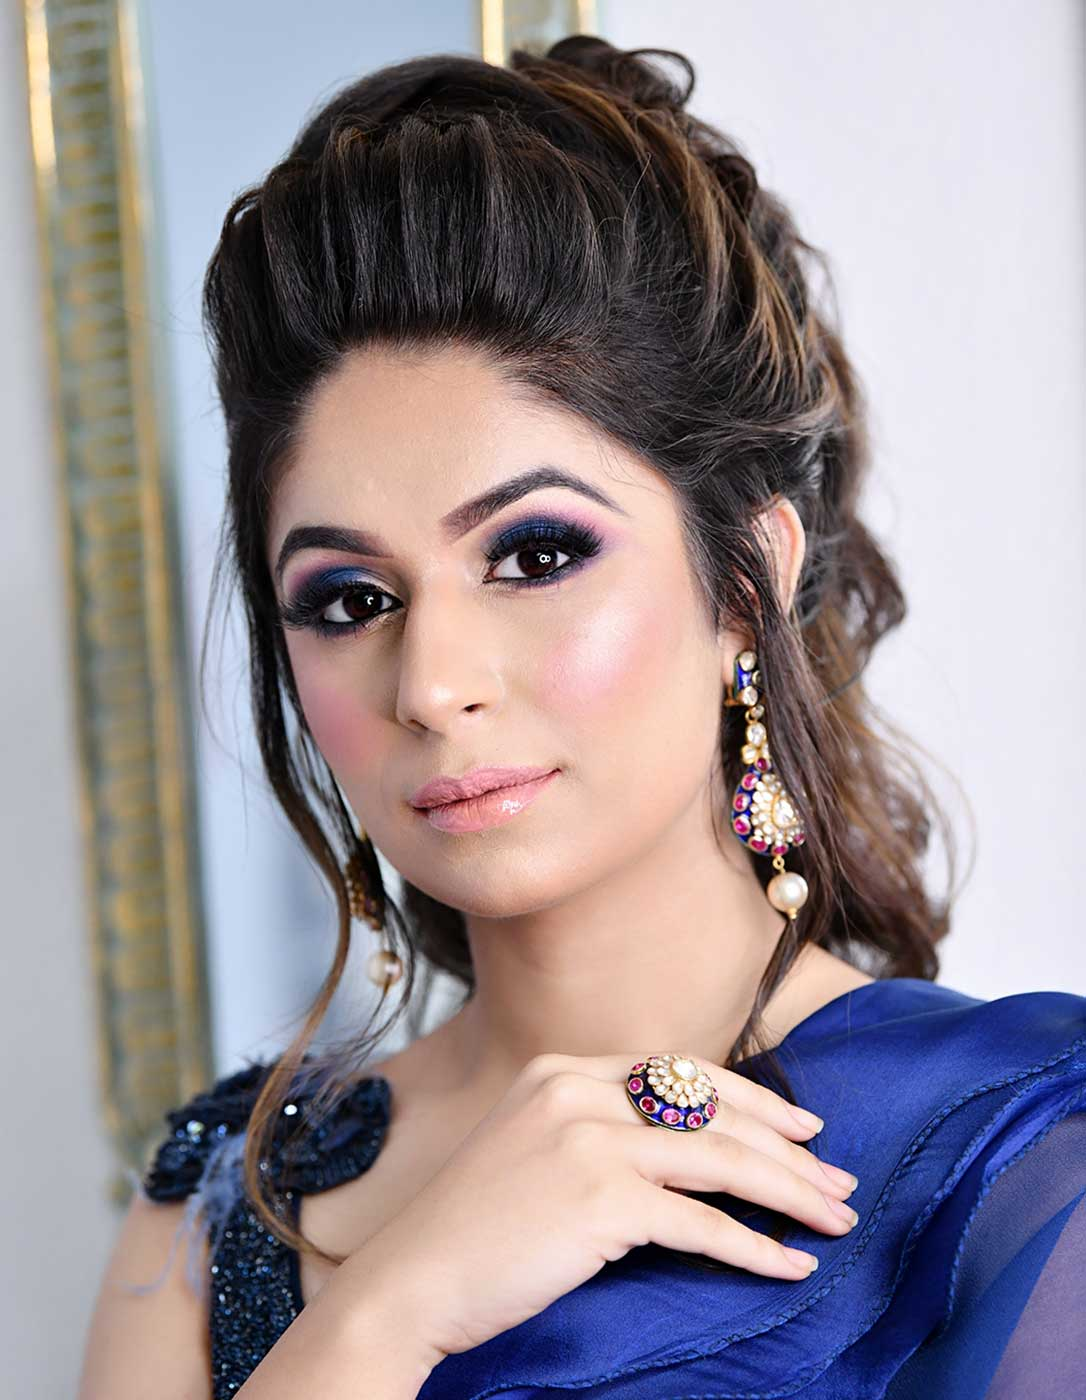 party makeup artist in gurgaon, party makeup at home in gurgaon, party makeup artist in gurgaon, parlour for bridal makeup in gurgaon, best makeover in gurgaon, makeup studio stores in gurgaon, best parlours in gurgaon top parlours in delhi, cocktail party makeup and hair artist in gurgaon